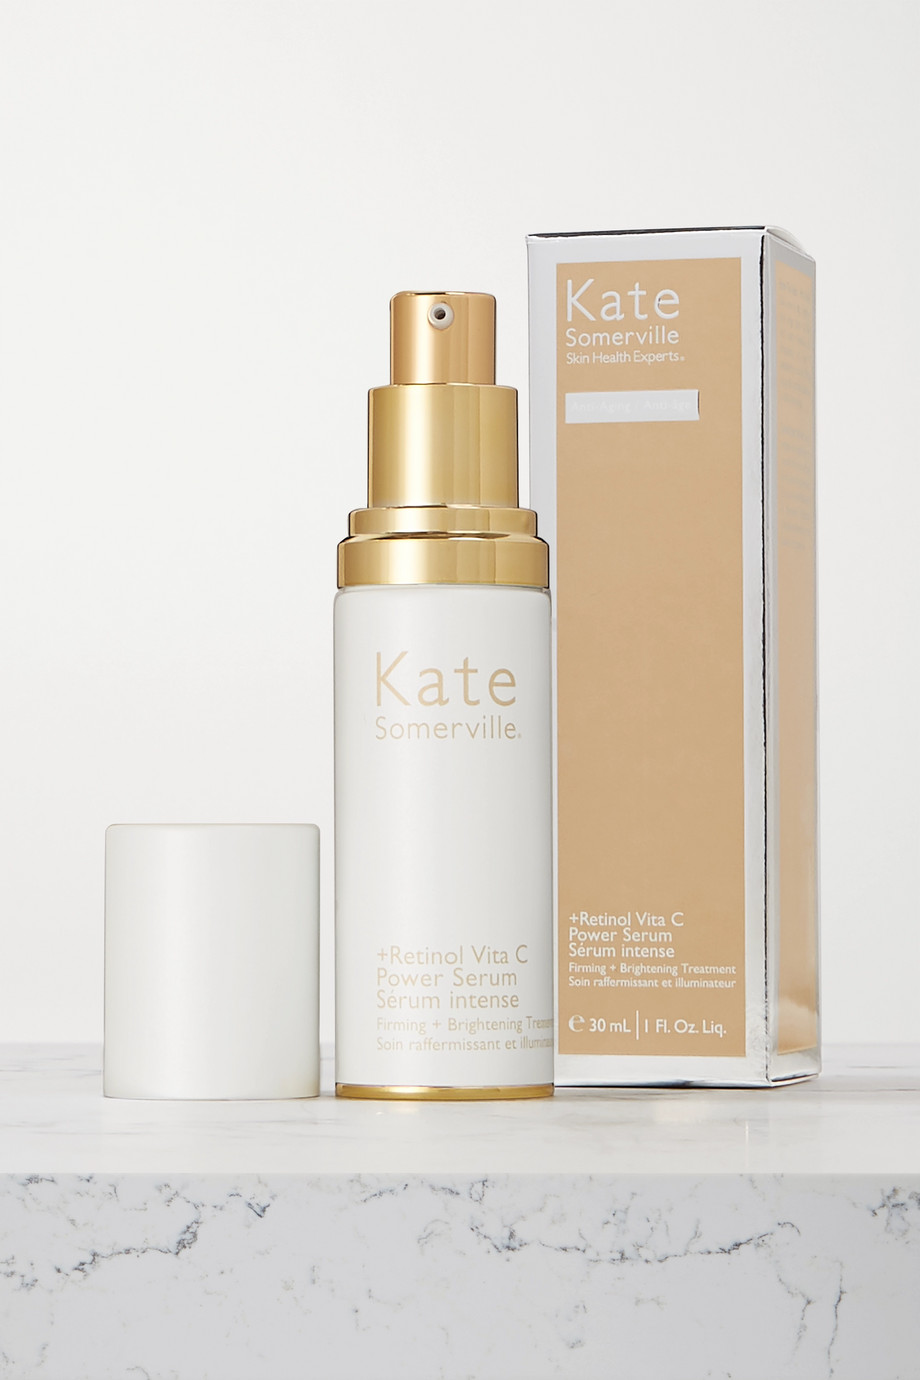 Kate Somerville +Retinol Vita C Power Serum, 30ml